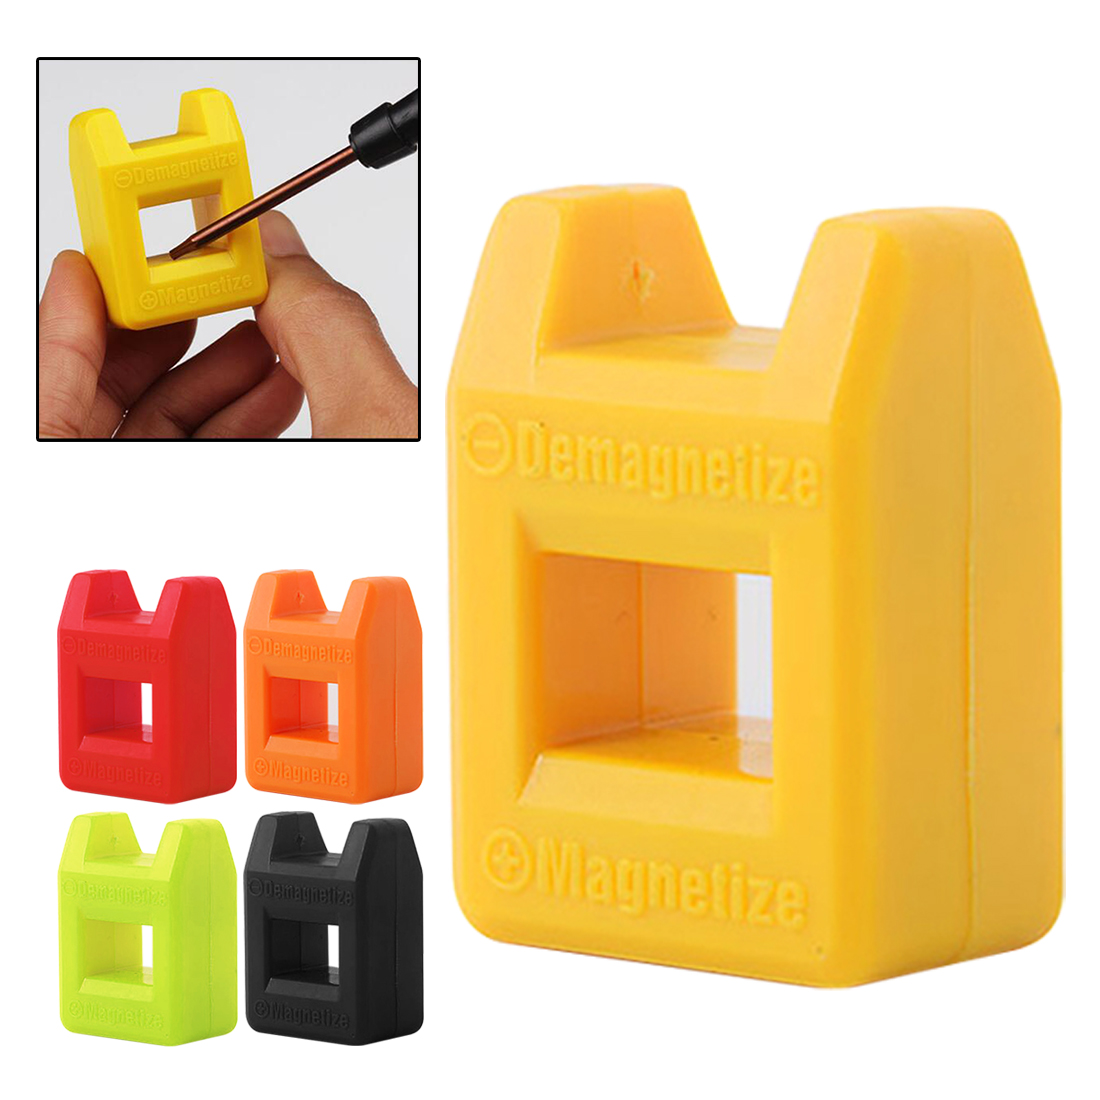 High Quality Magnetizer Demagnetizer Tool Mini Fast 2 In 1 Screwdriver Magnetic Hand Tools Colour Send Random